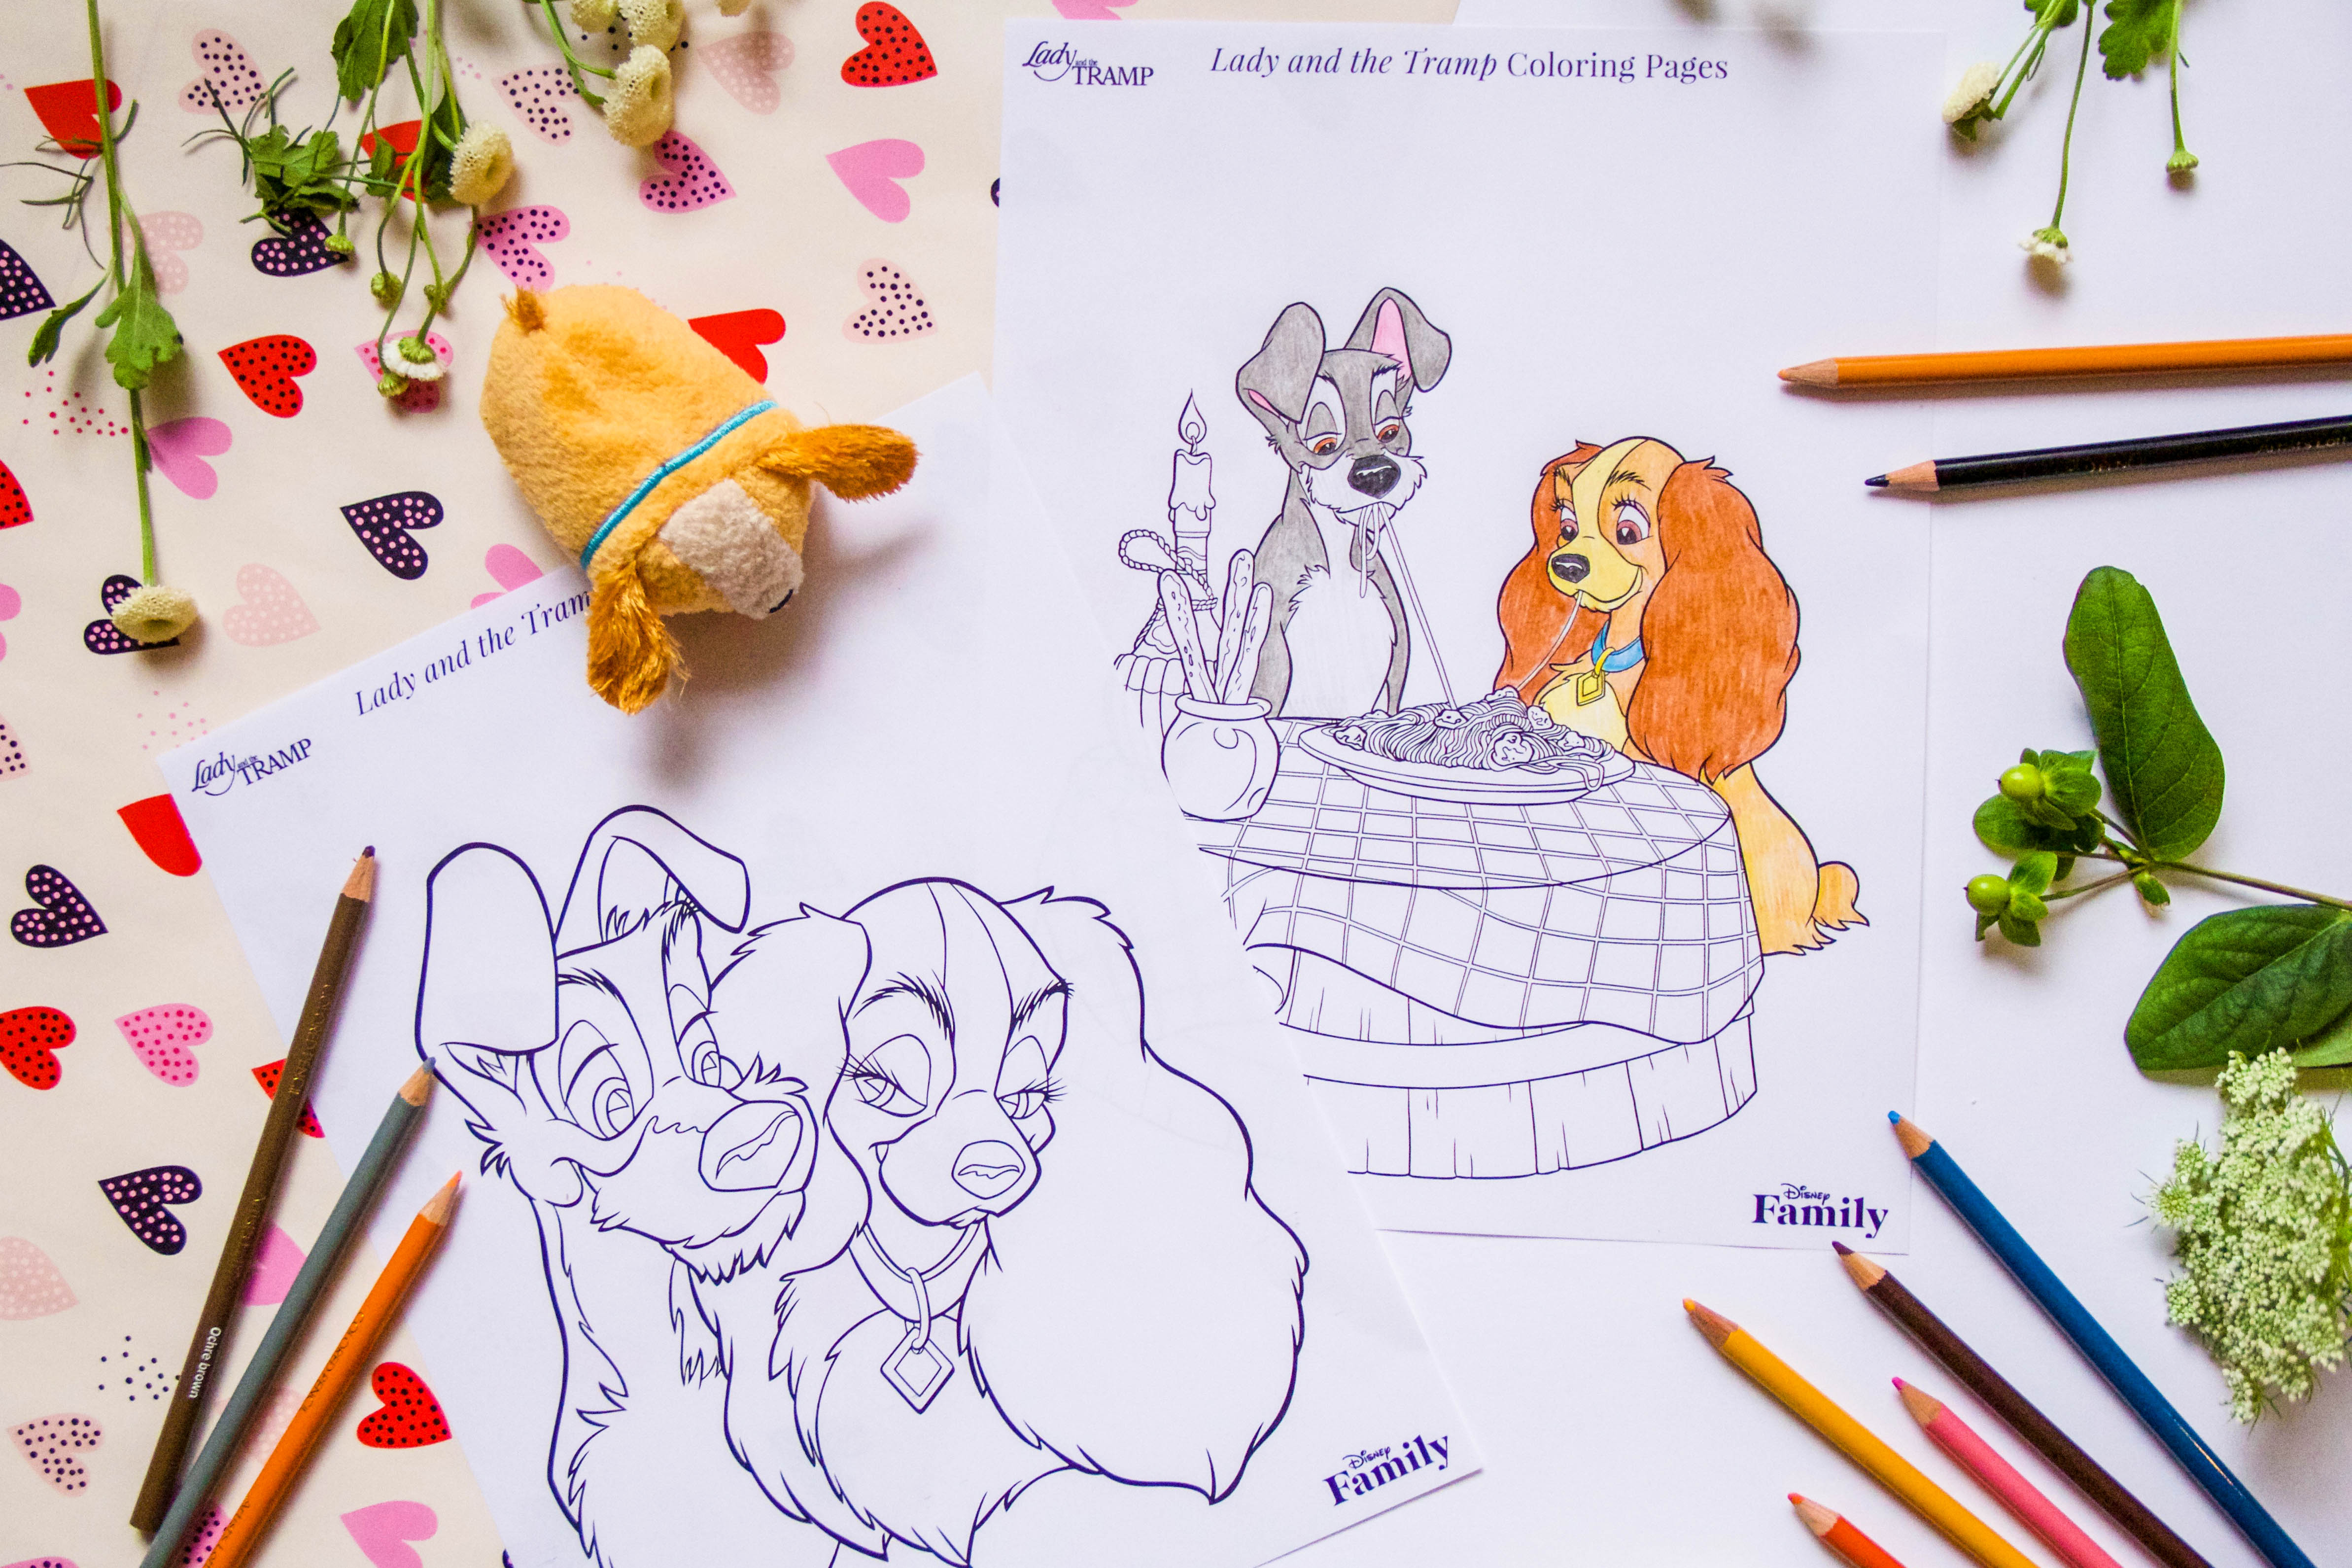 Lady And The Tramp Coloring Pages Lady And The Tramp Coloring Pages Disney Family